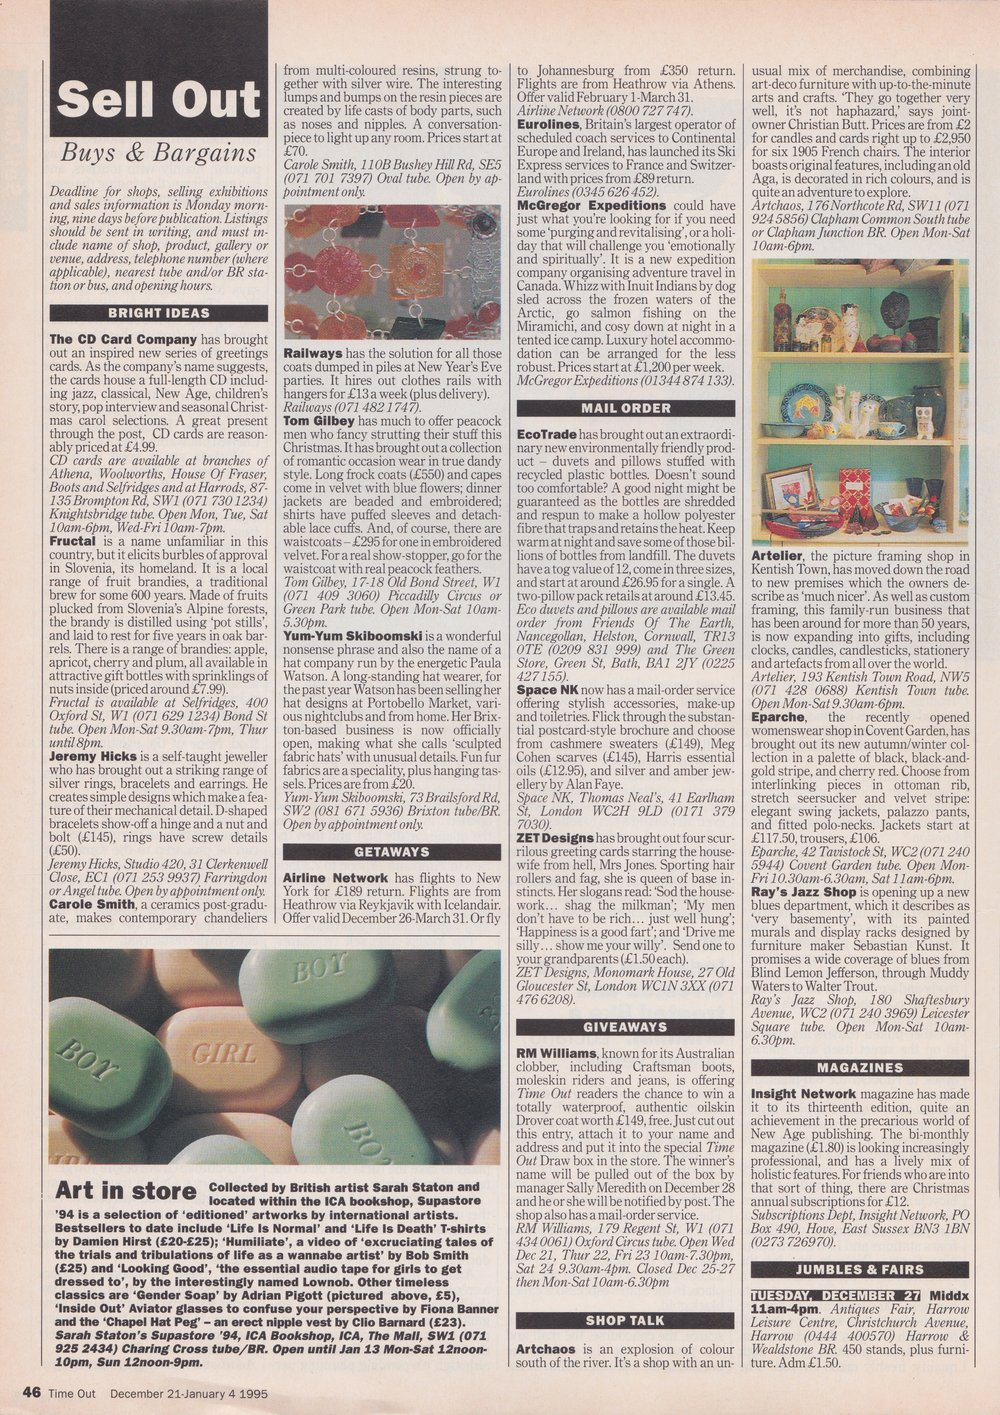 Time Out Dec 95.jpg